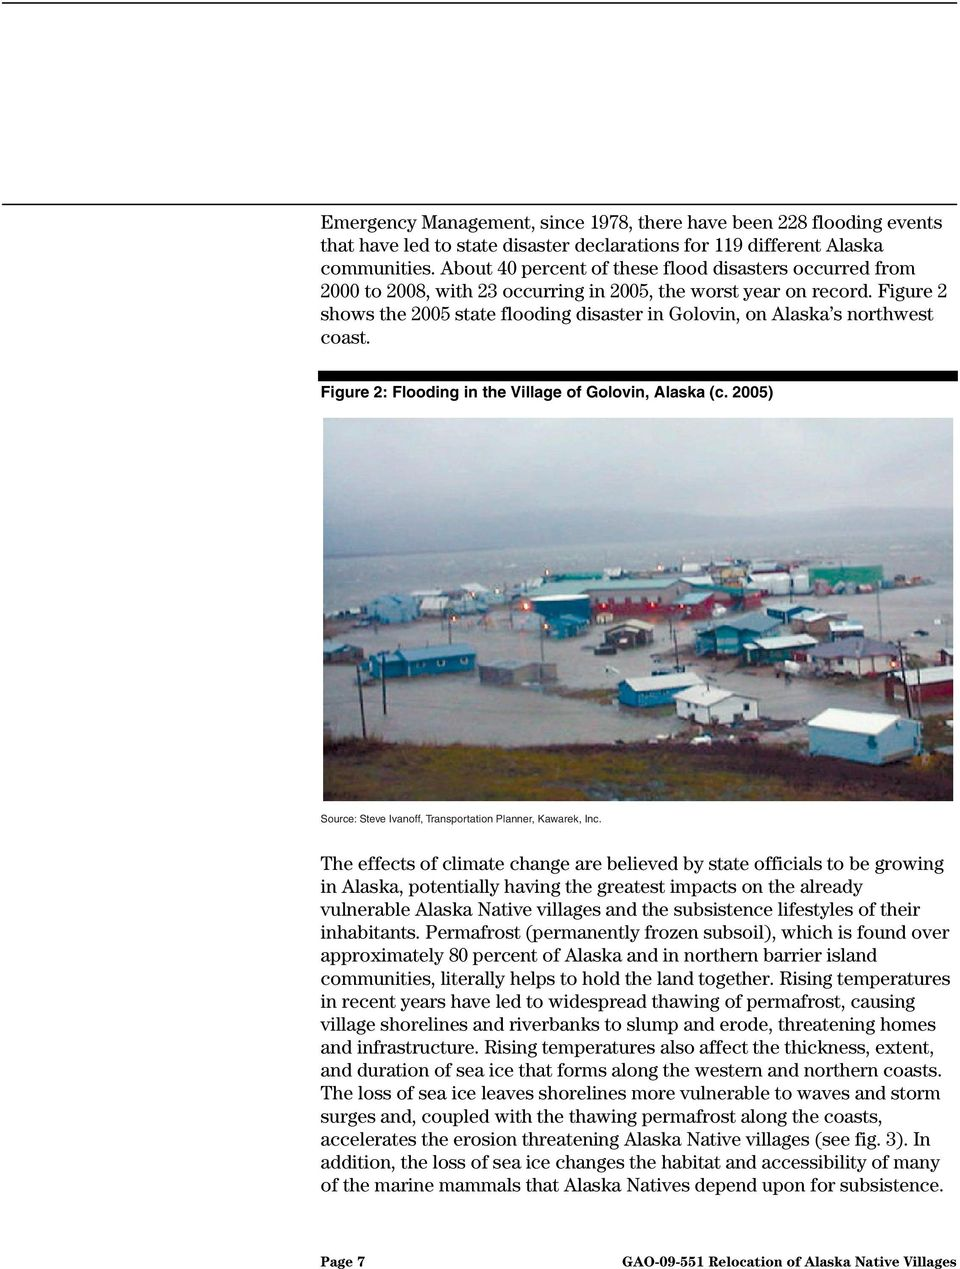 Figure 2 shows the 2005 state flooding disaster in Golovin, on Alaska s northwest coast. Figure 2: Flooding in the Village of Golovin, Alaska (c.